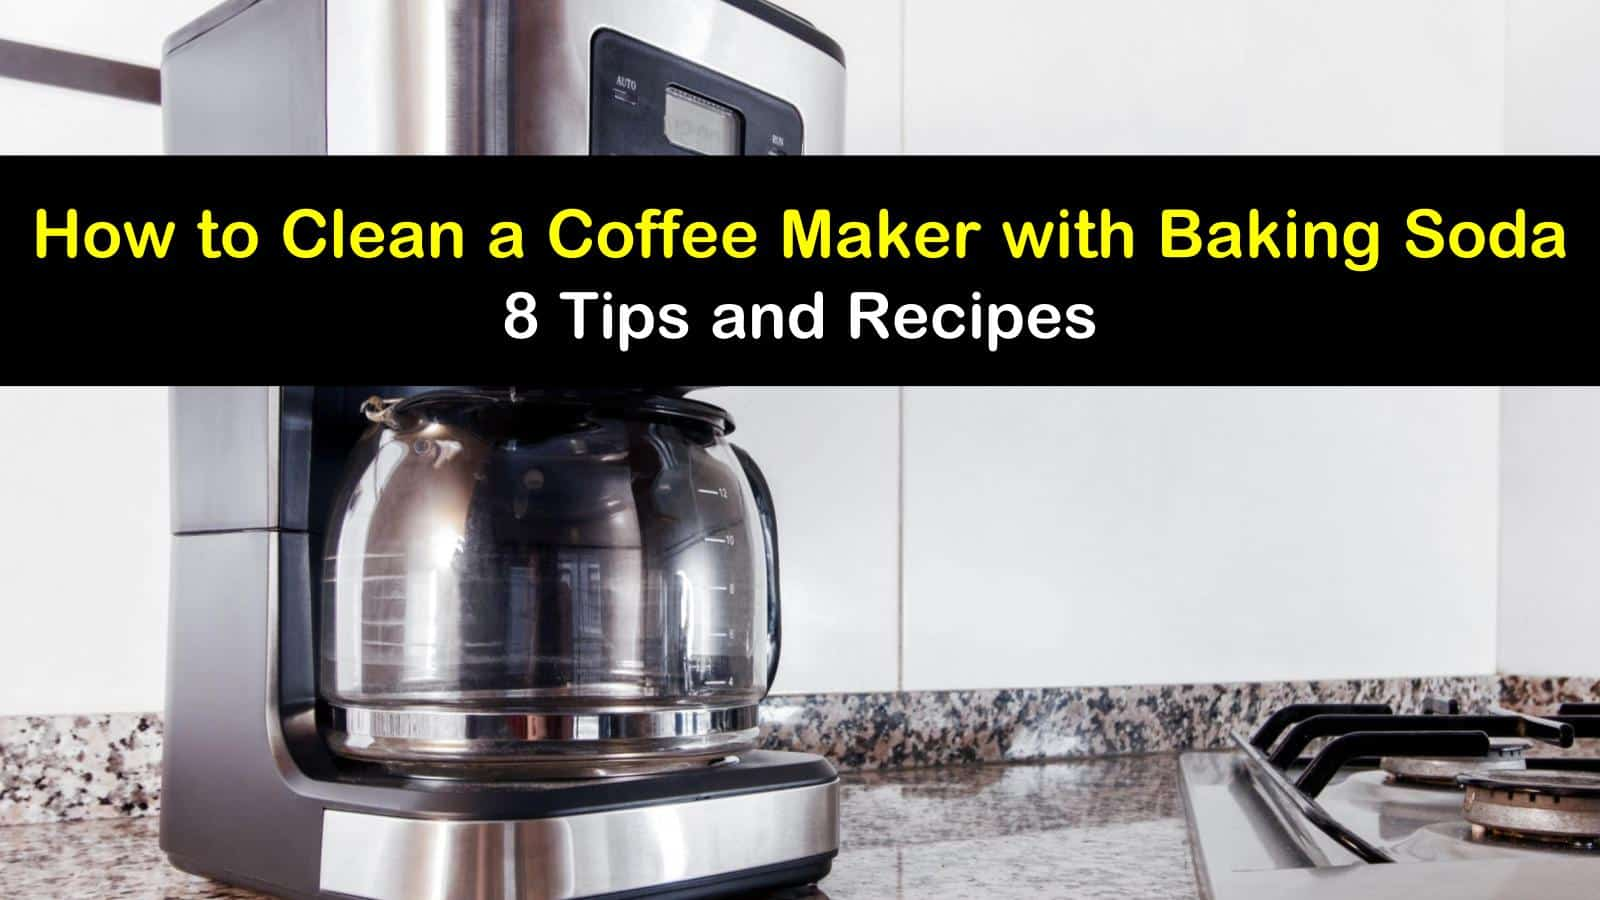 how to clean a coffee maker with baking soda titleimg1